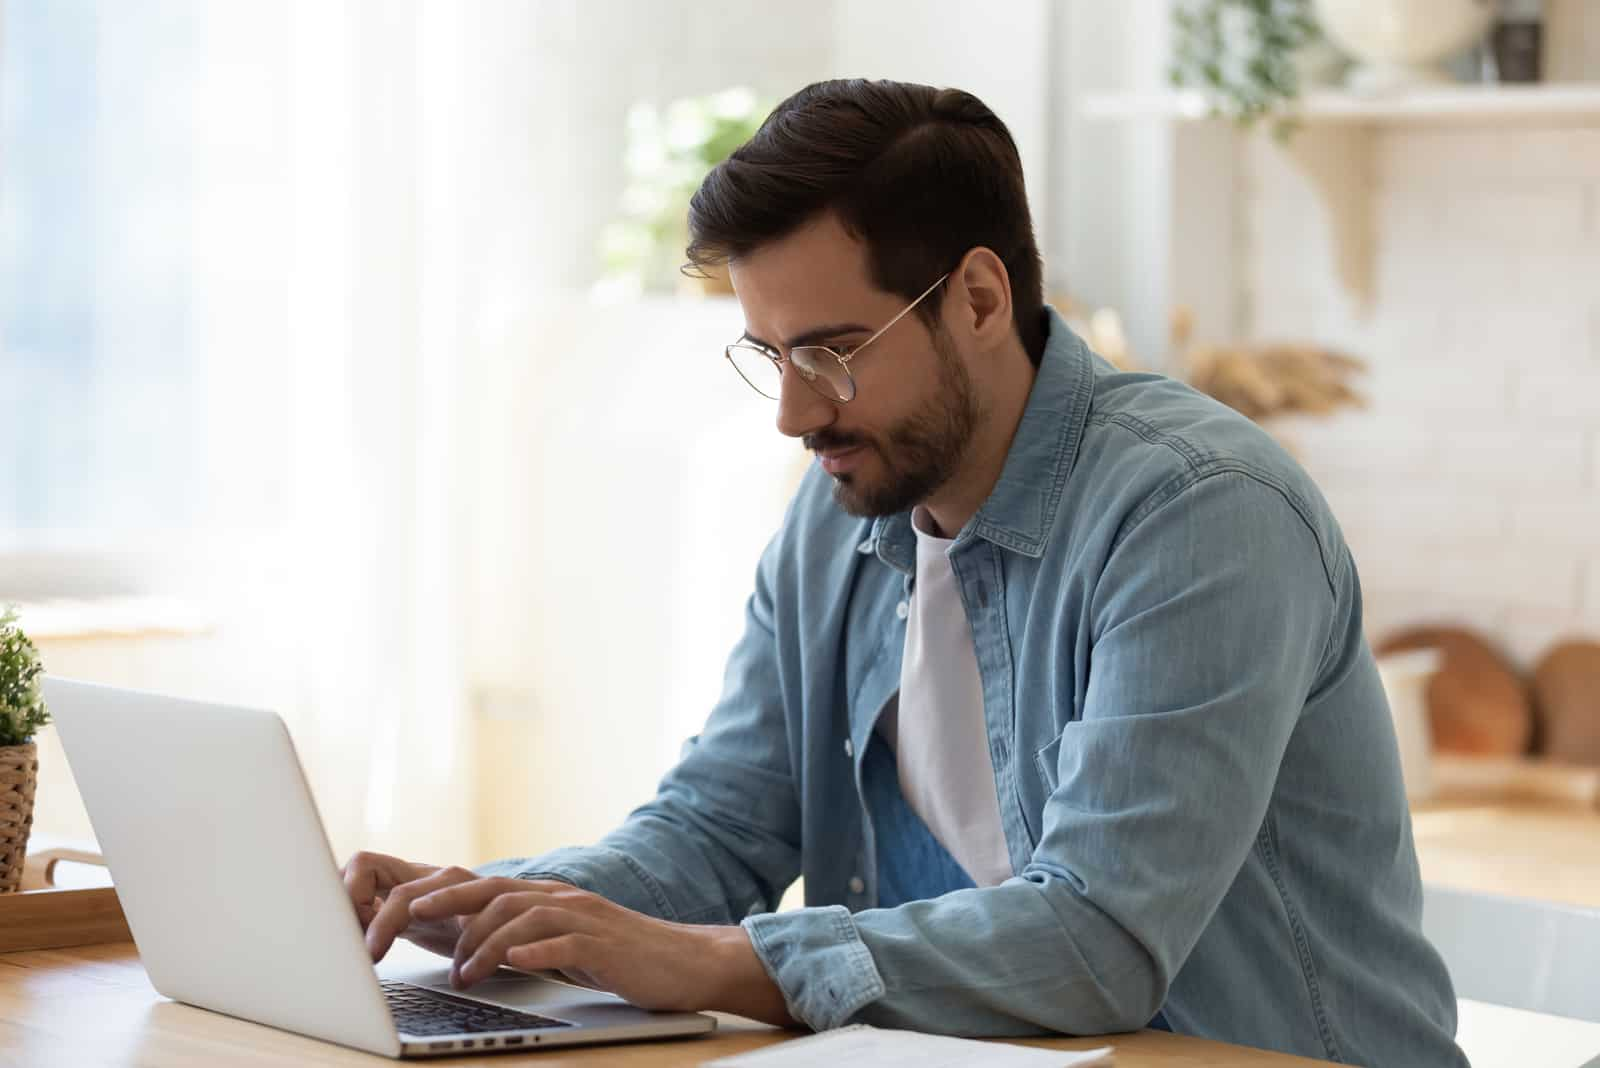 man sitting at wooden table and working on laptop